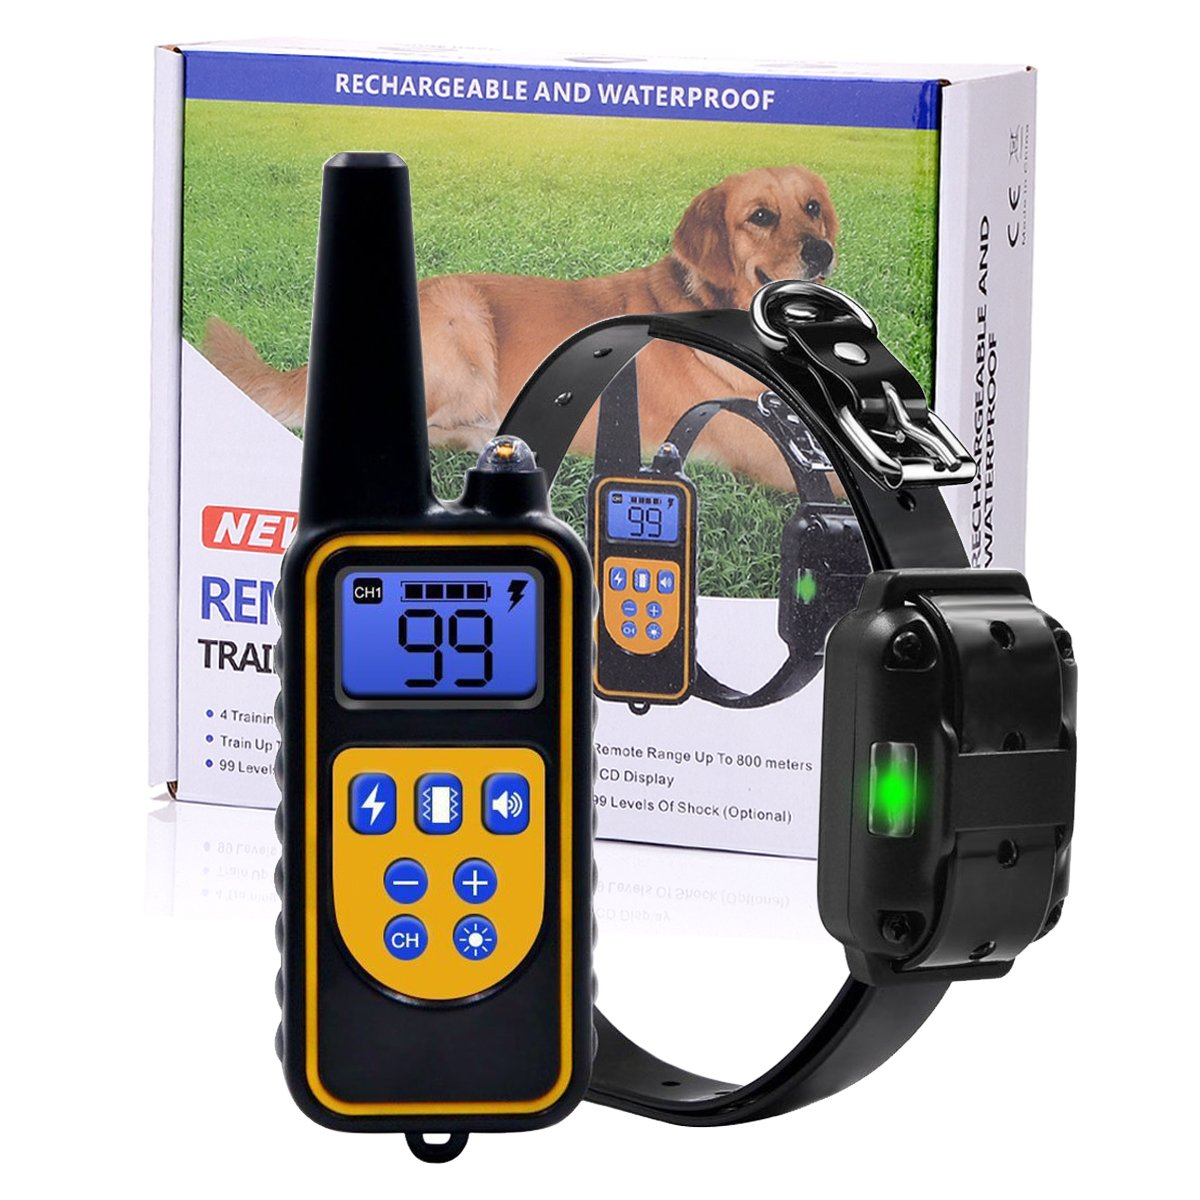 Pet Accessories Worldwide Dog Training Shock Collar with Rechargeable Remote, 875 yards Range with Beep Vibration, Waterproof for 3 dogs, All dogs and puppies Sizes Small Medium and Large by